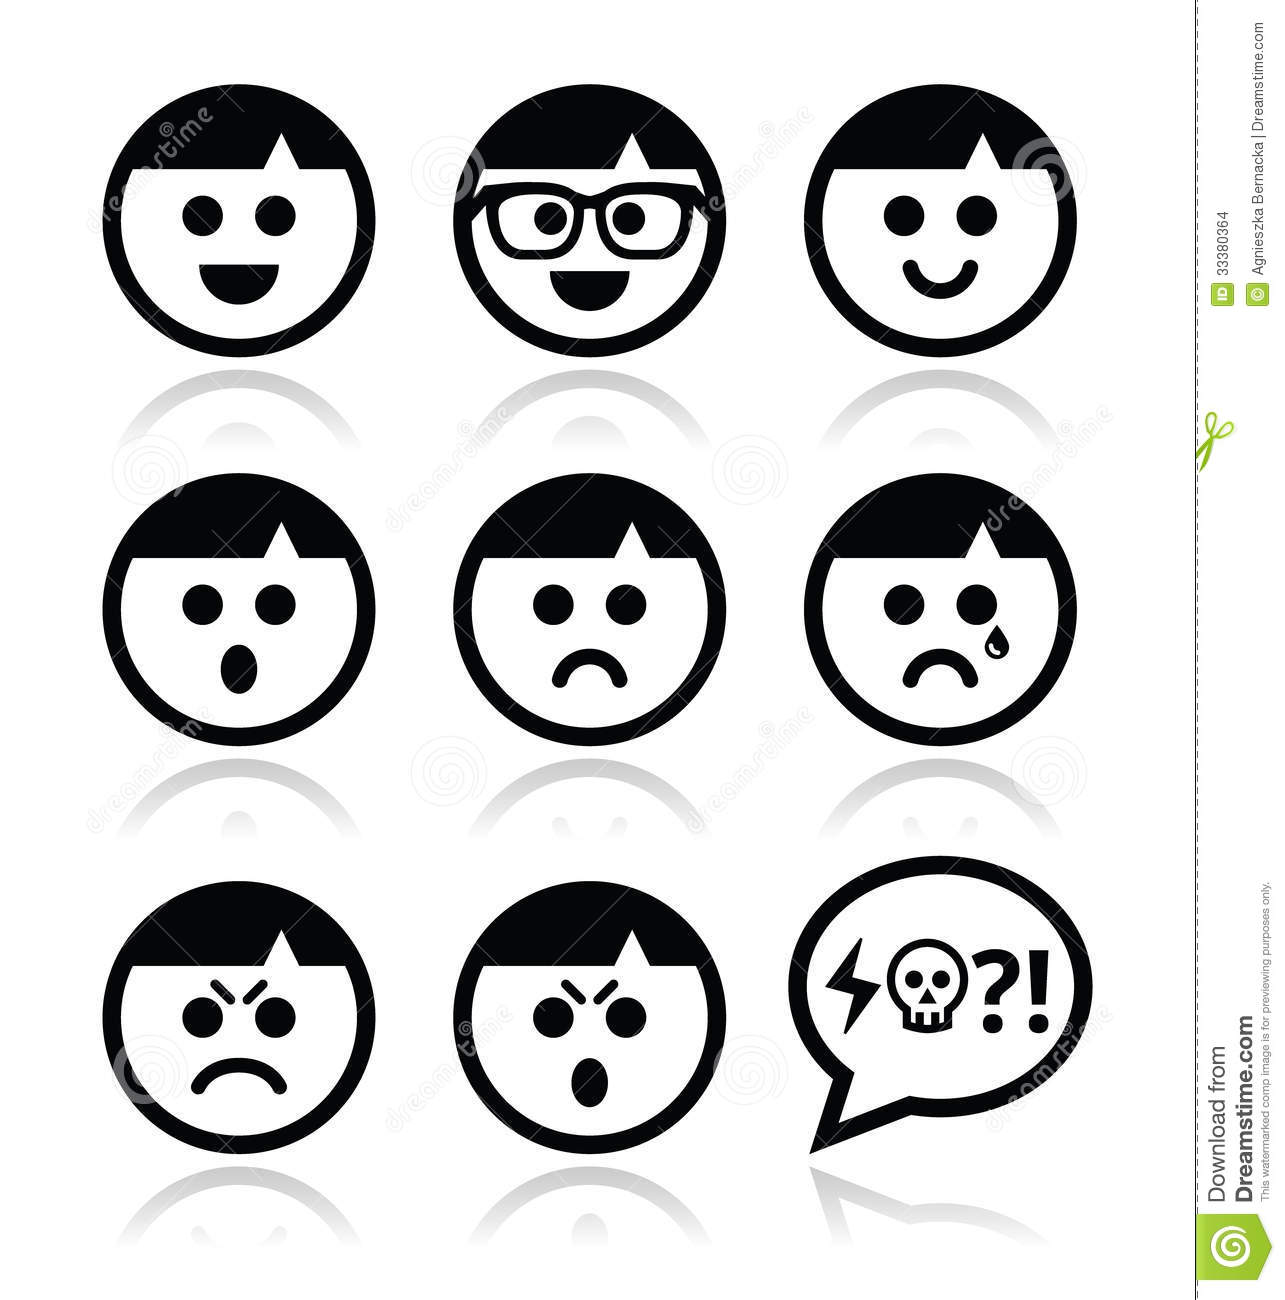 Smiley Faces, Avatar Icons Set Stock Images - Image: 33380364